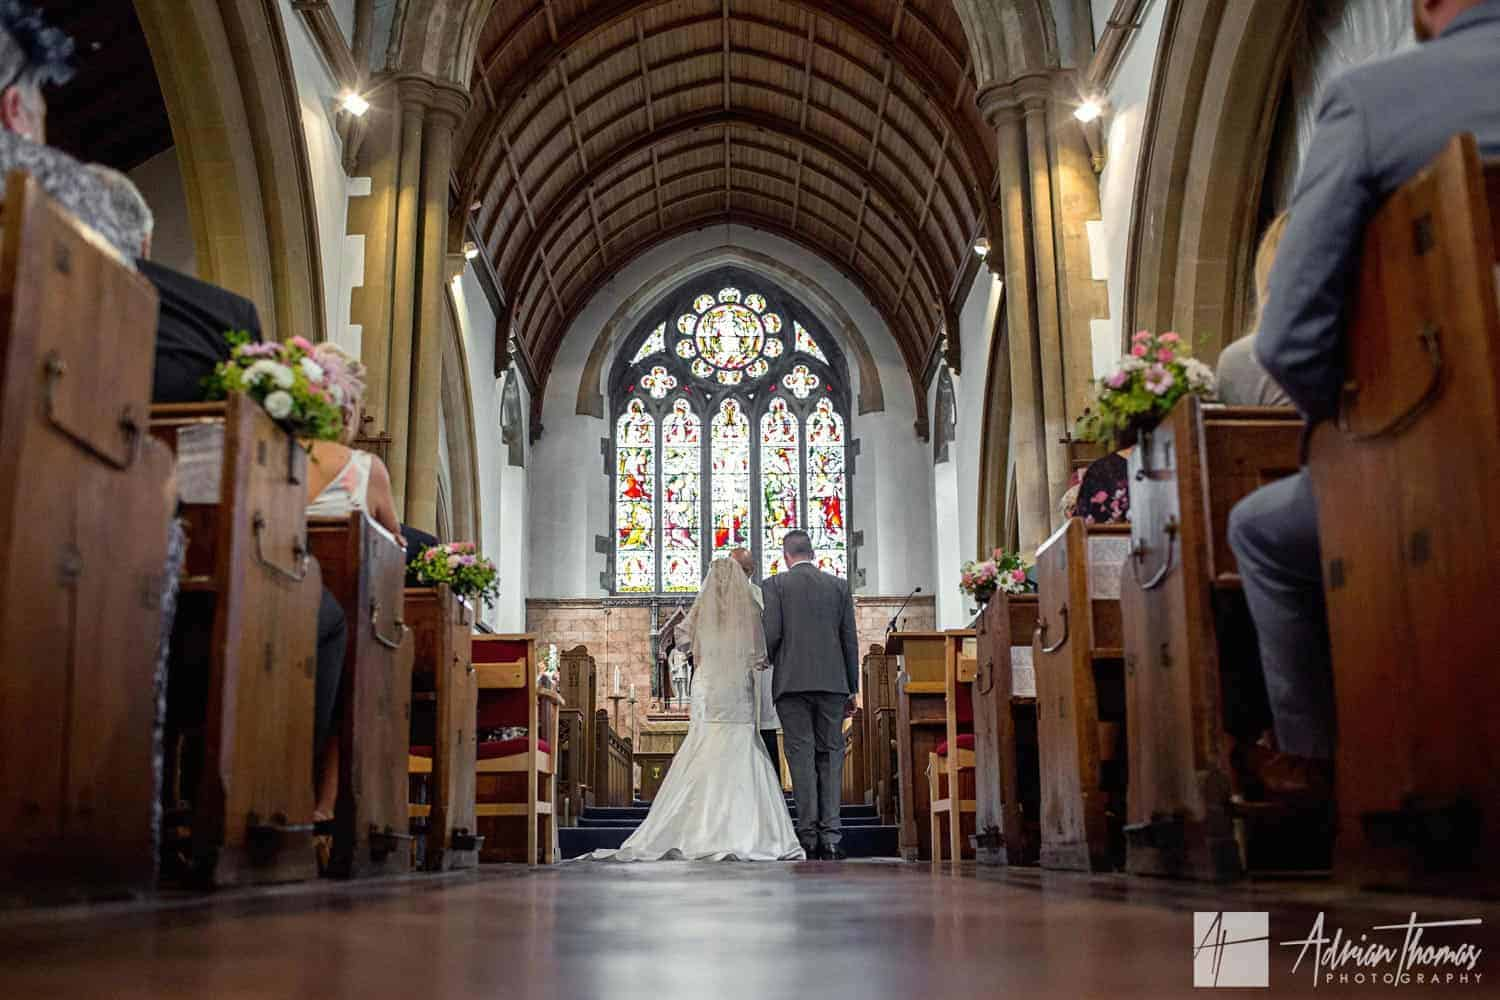 Image of bride and groom from the rear of St Martin's Church Caerphilly wedding.